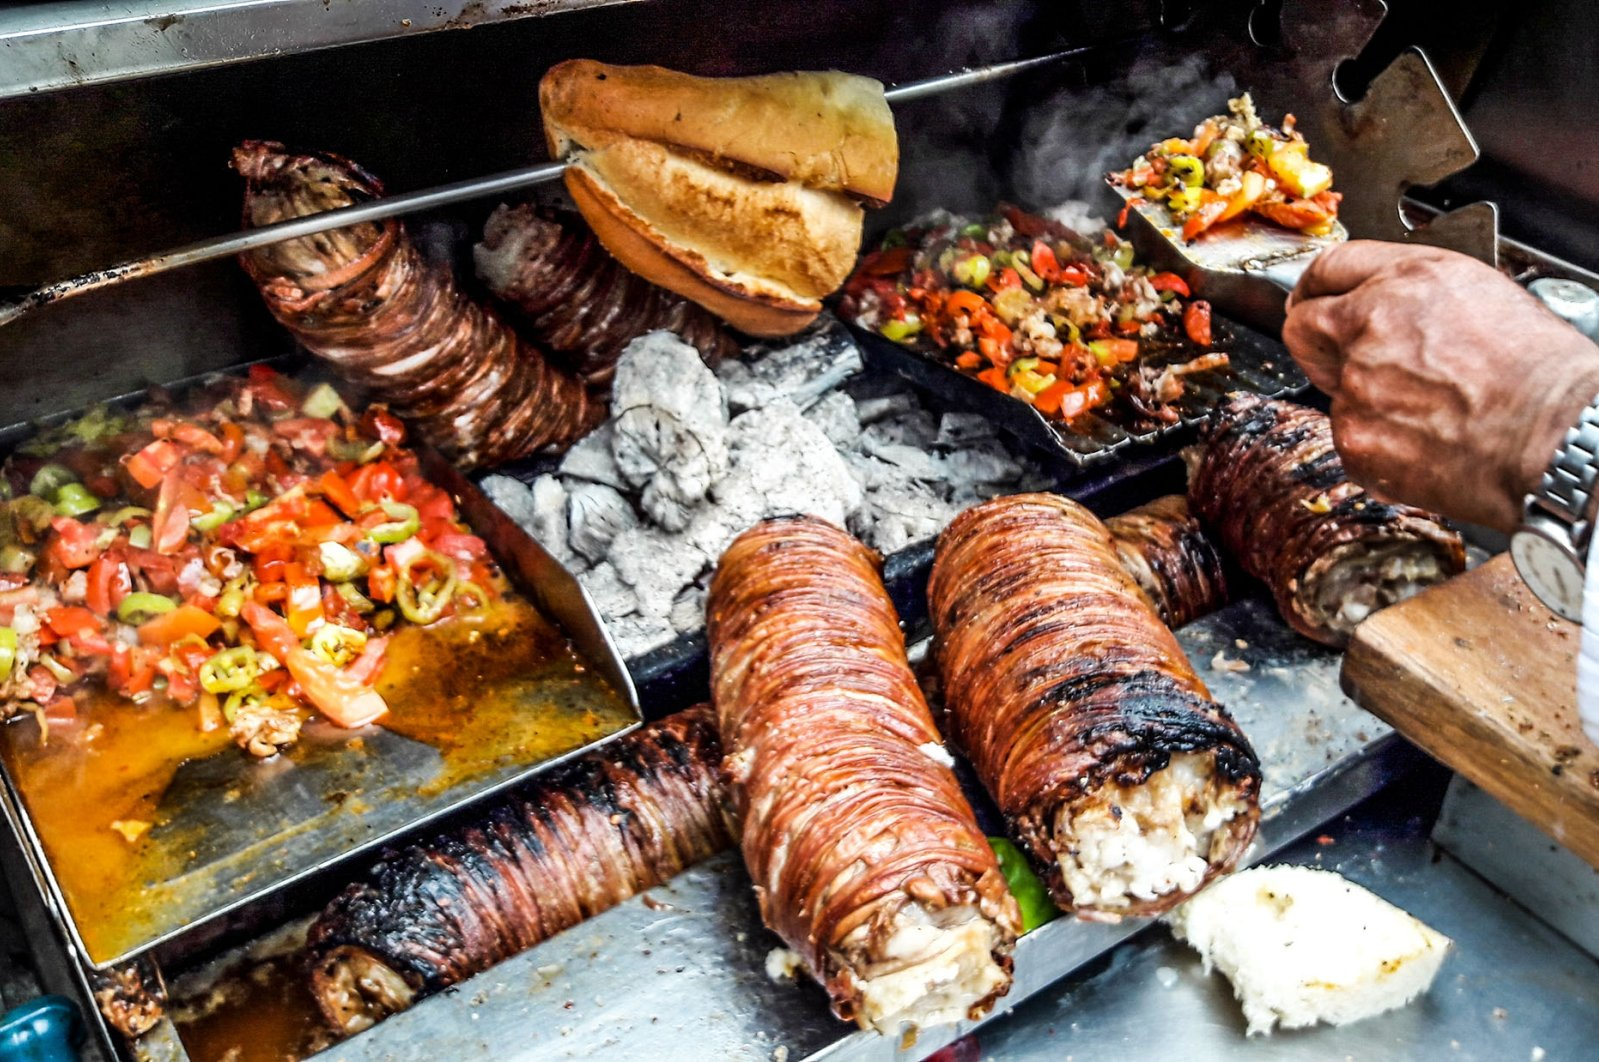 Kokoreç is one of the most divisive foods in Turkish society. (Shutterstock Photo)